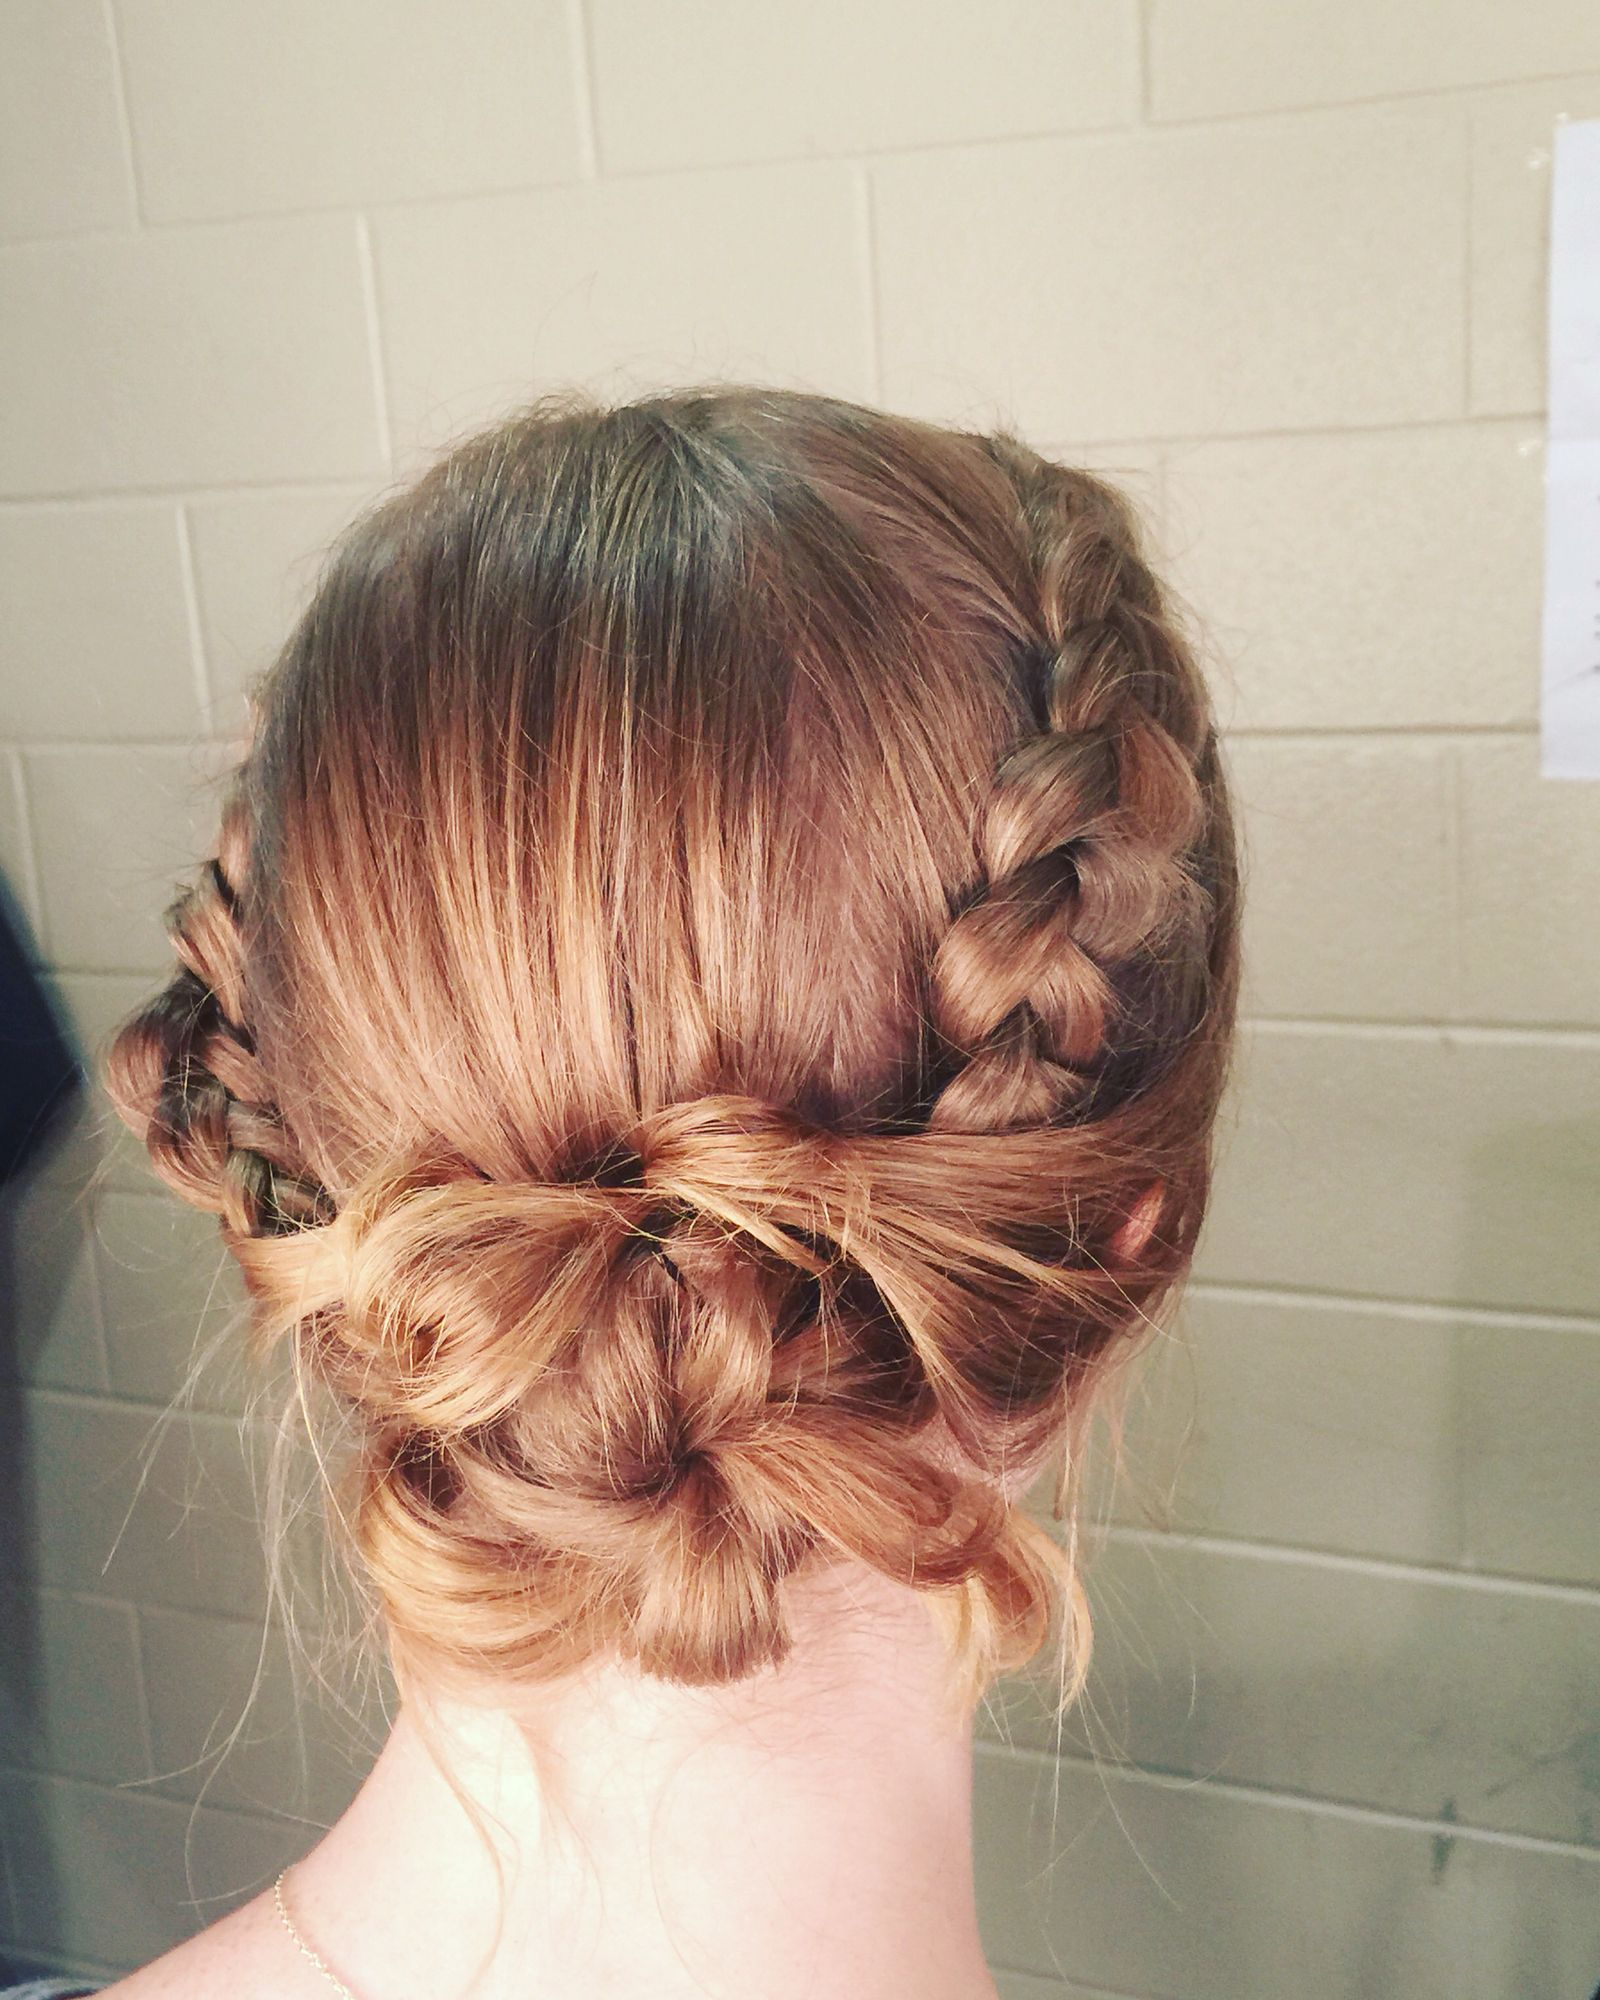 Tspa san antonio braid updo hairjule pinterest updo